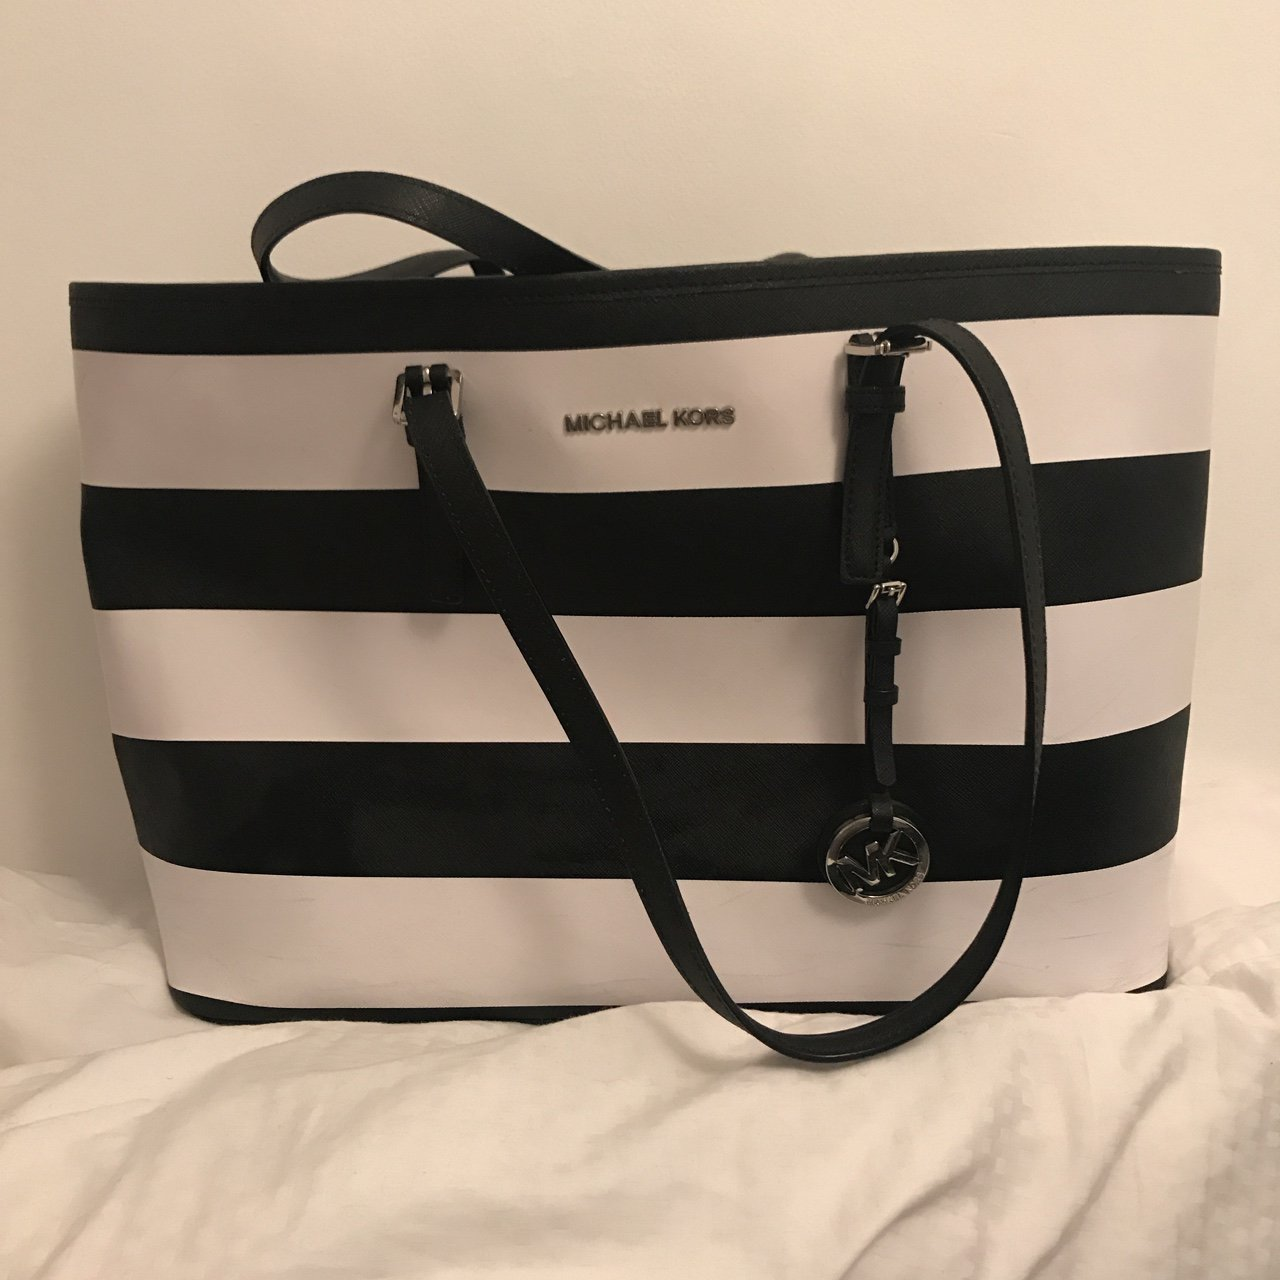 0d248037559177 Michael Kors striped medium travel bag. Black/white. Great a - Depop